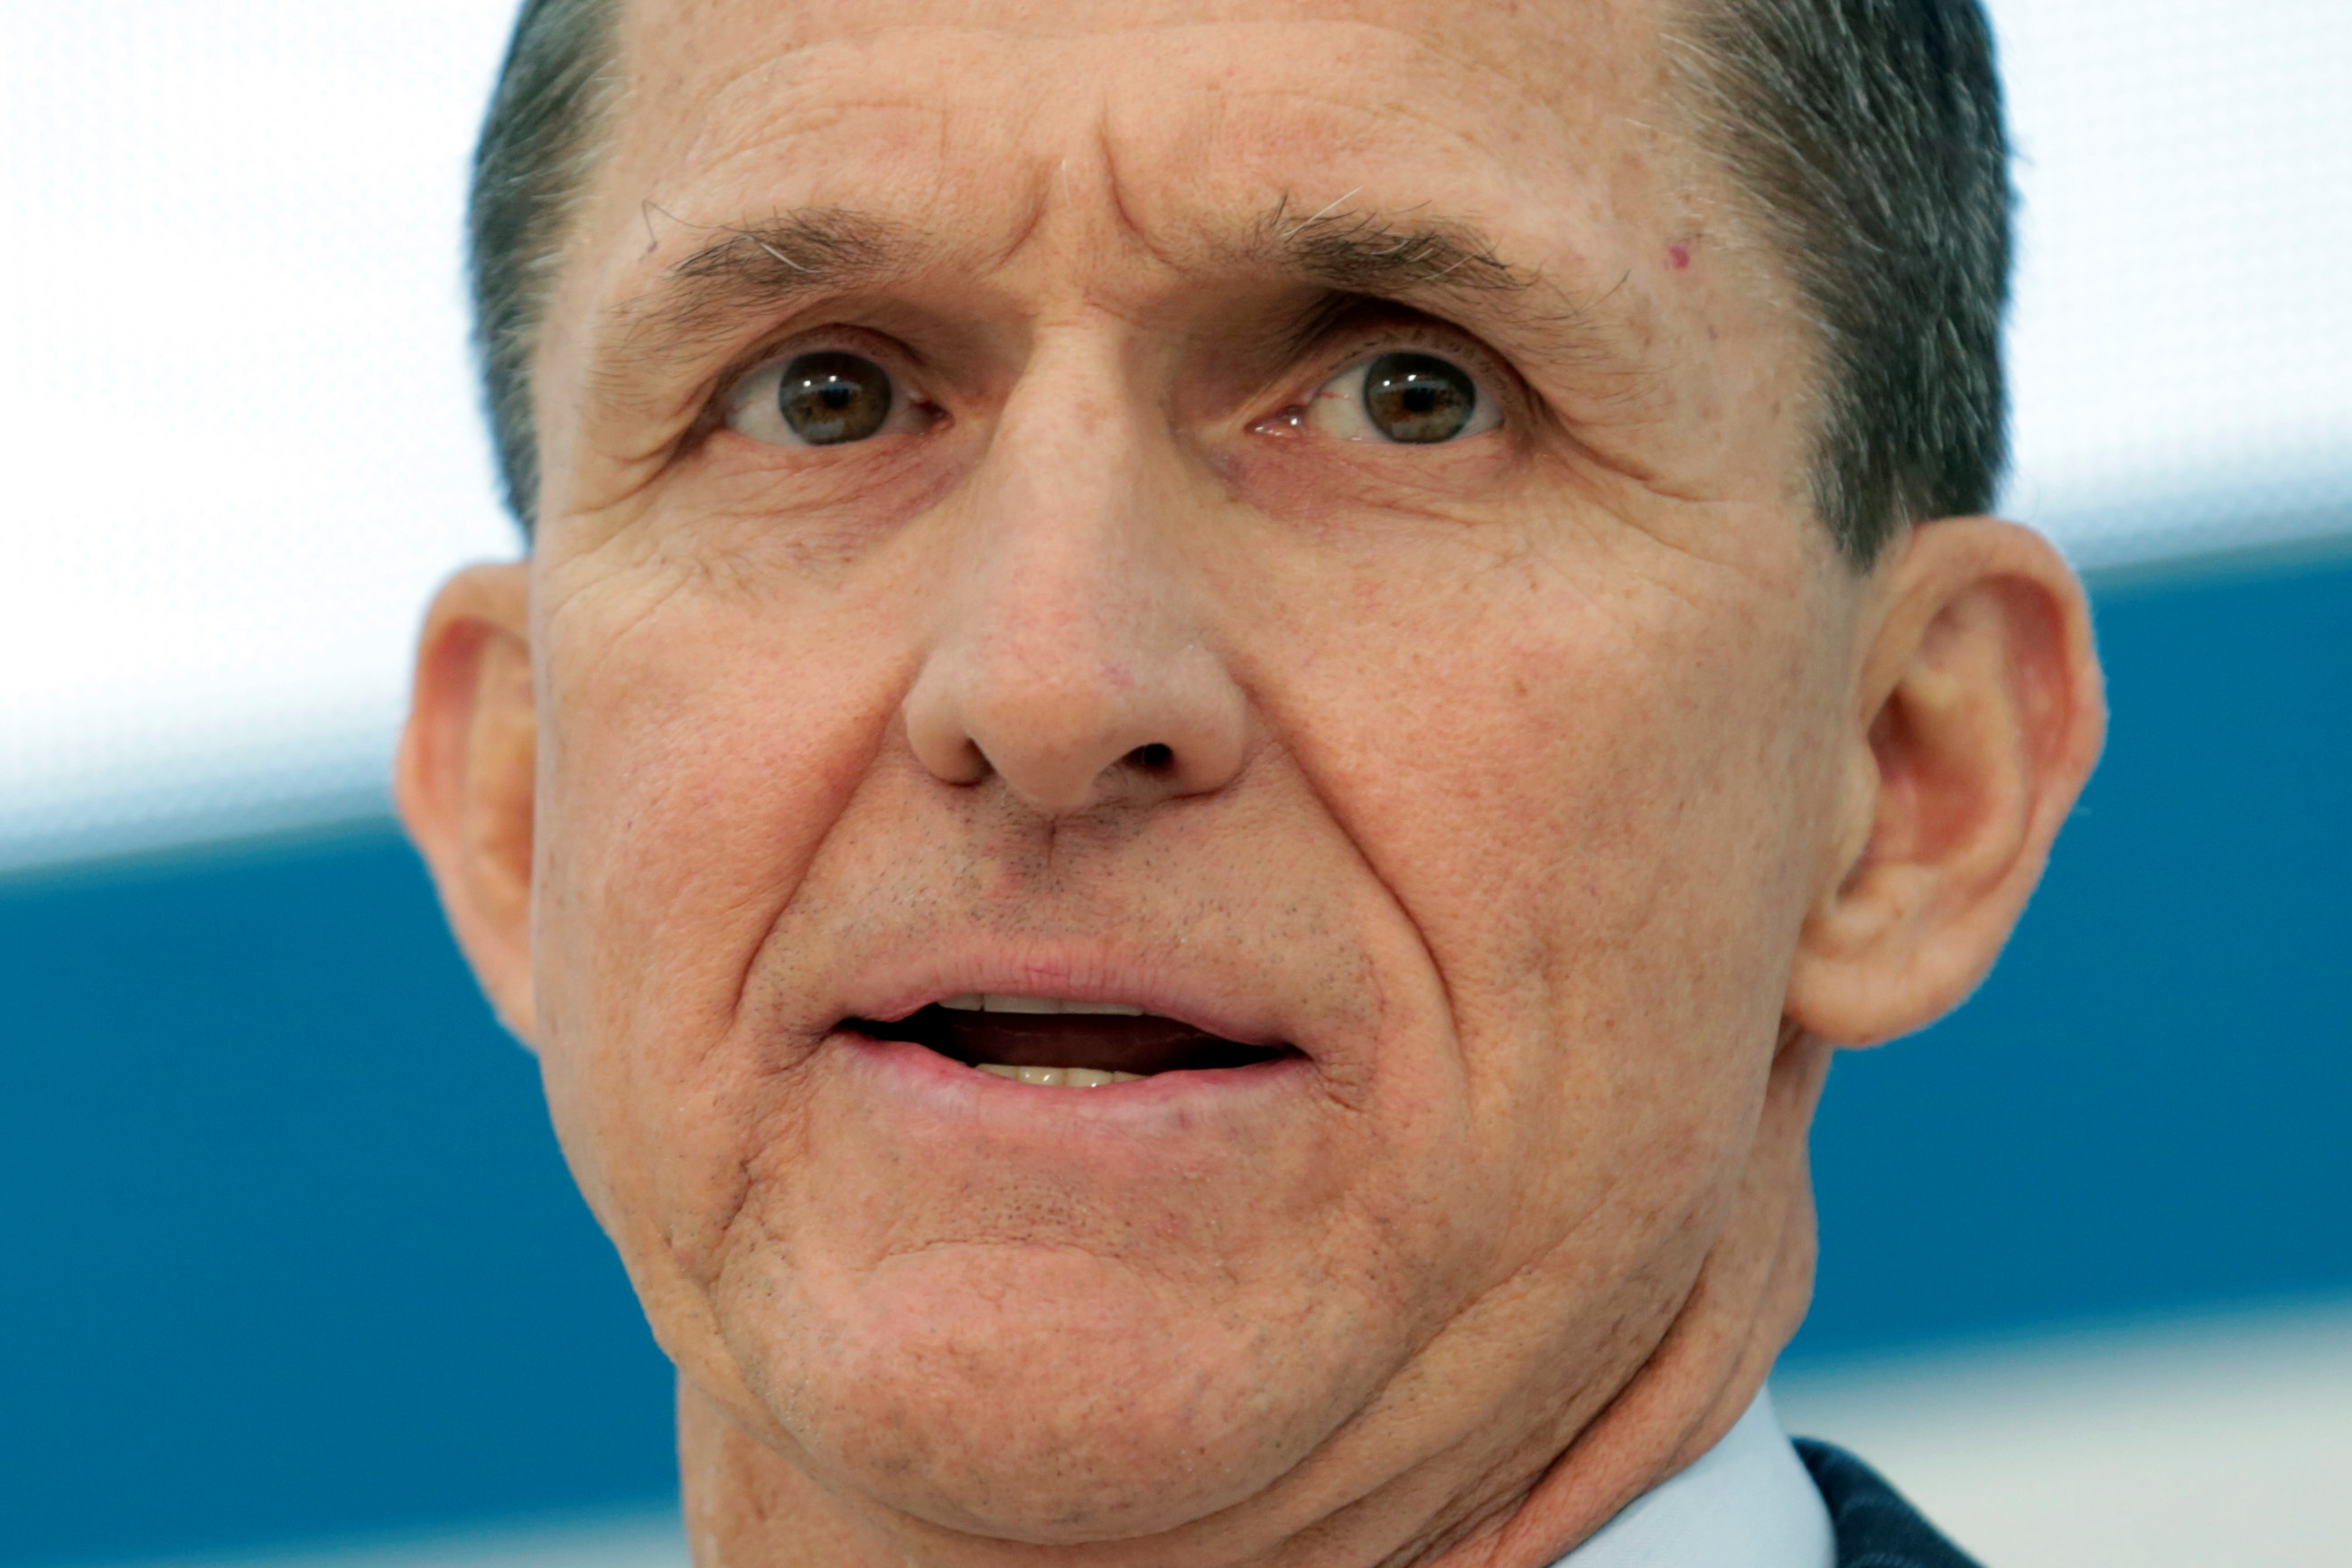 """Former Defense Intelligence Agency Director retired Army Lt. Gen. Michael Flynn, incoming White House national security adviser, speaks at the U.S. Institute of Peace """"2017 Passing the Baton"""" conference in Washington"""